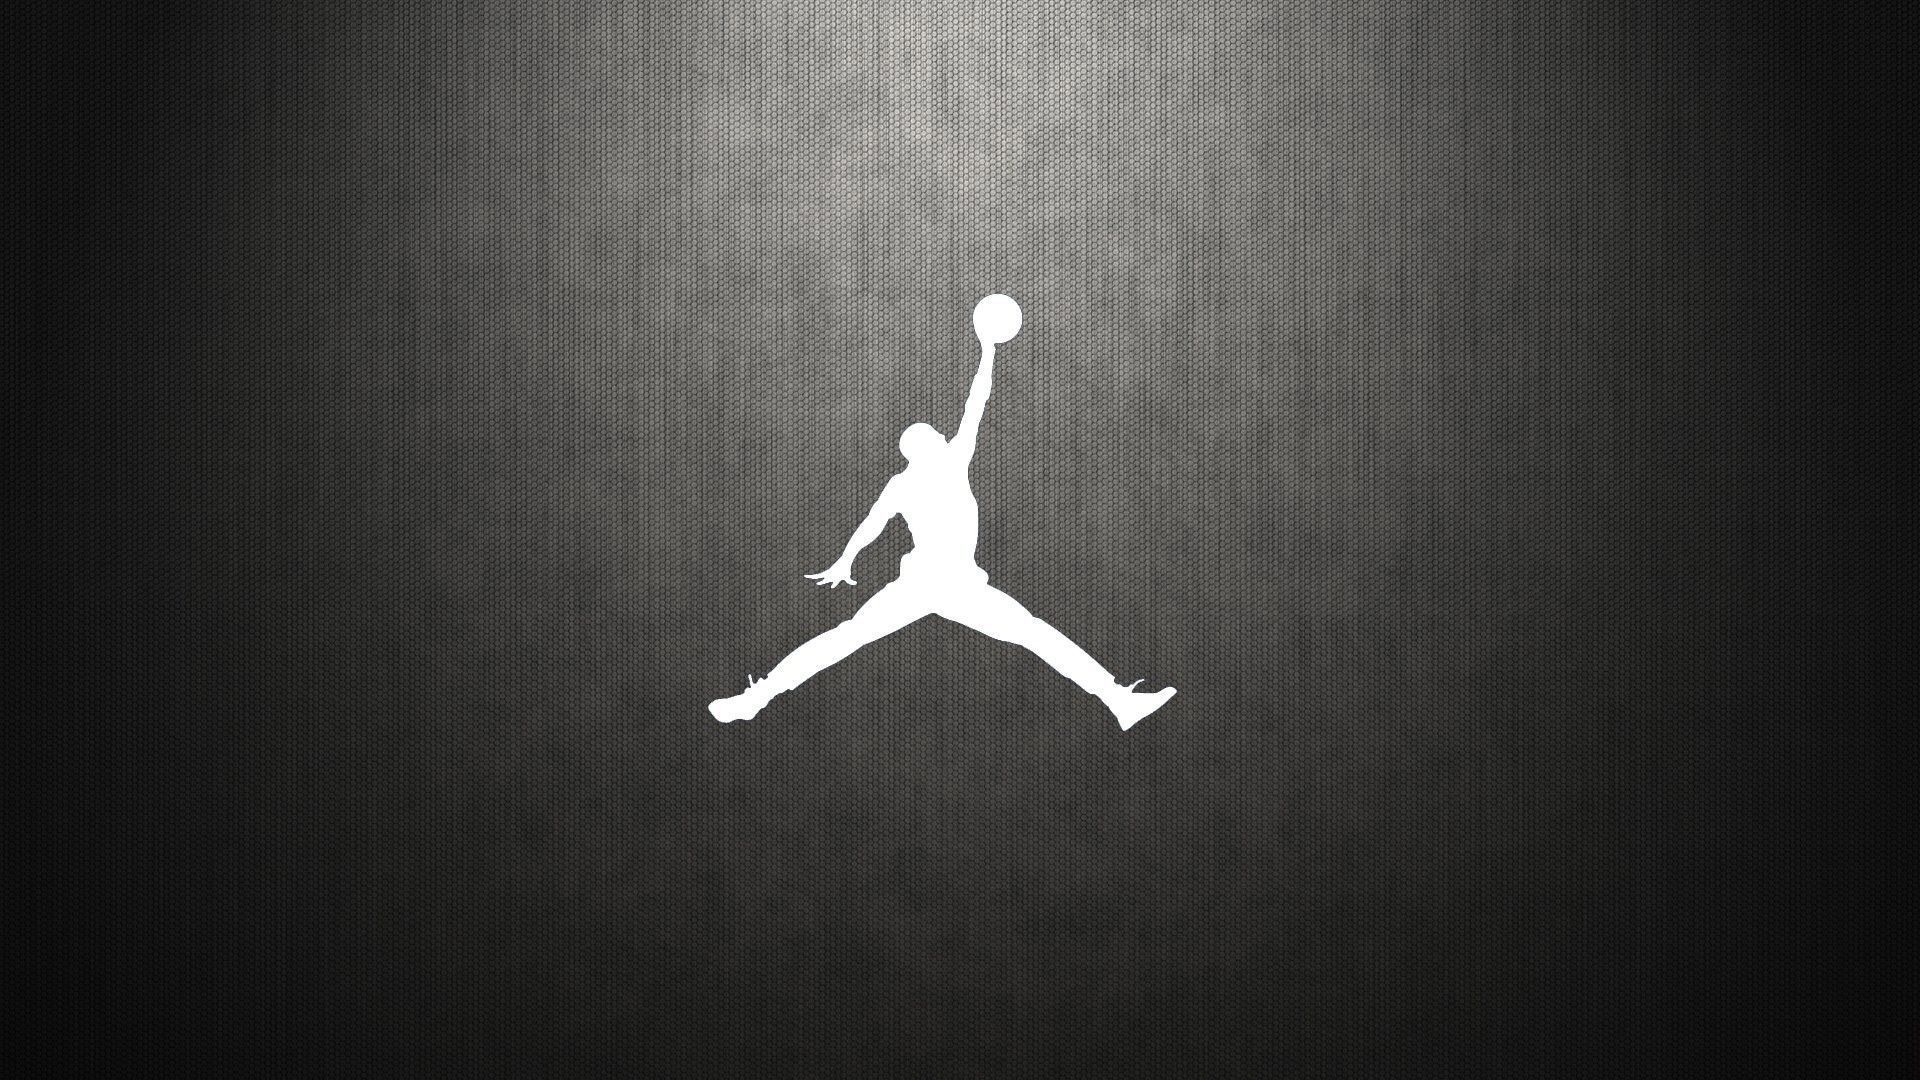 best nike wallpapers